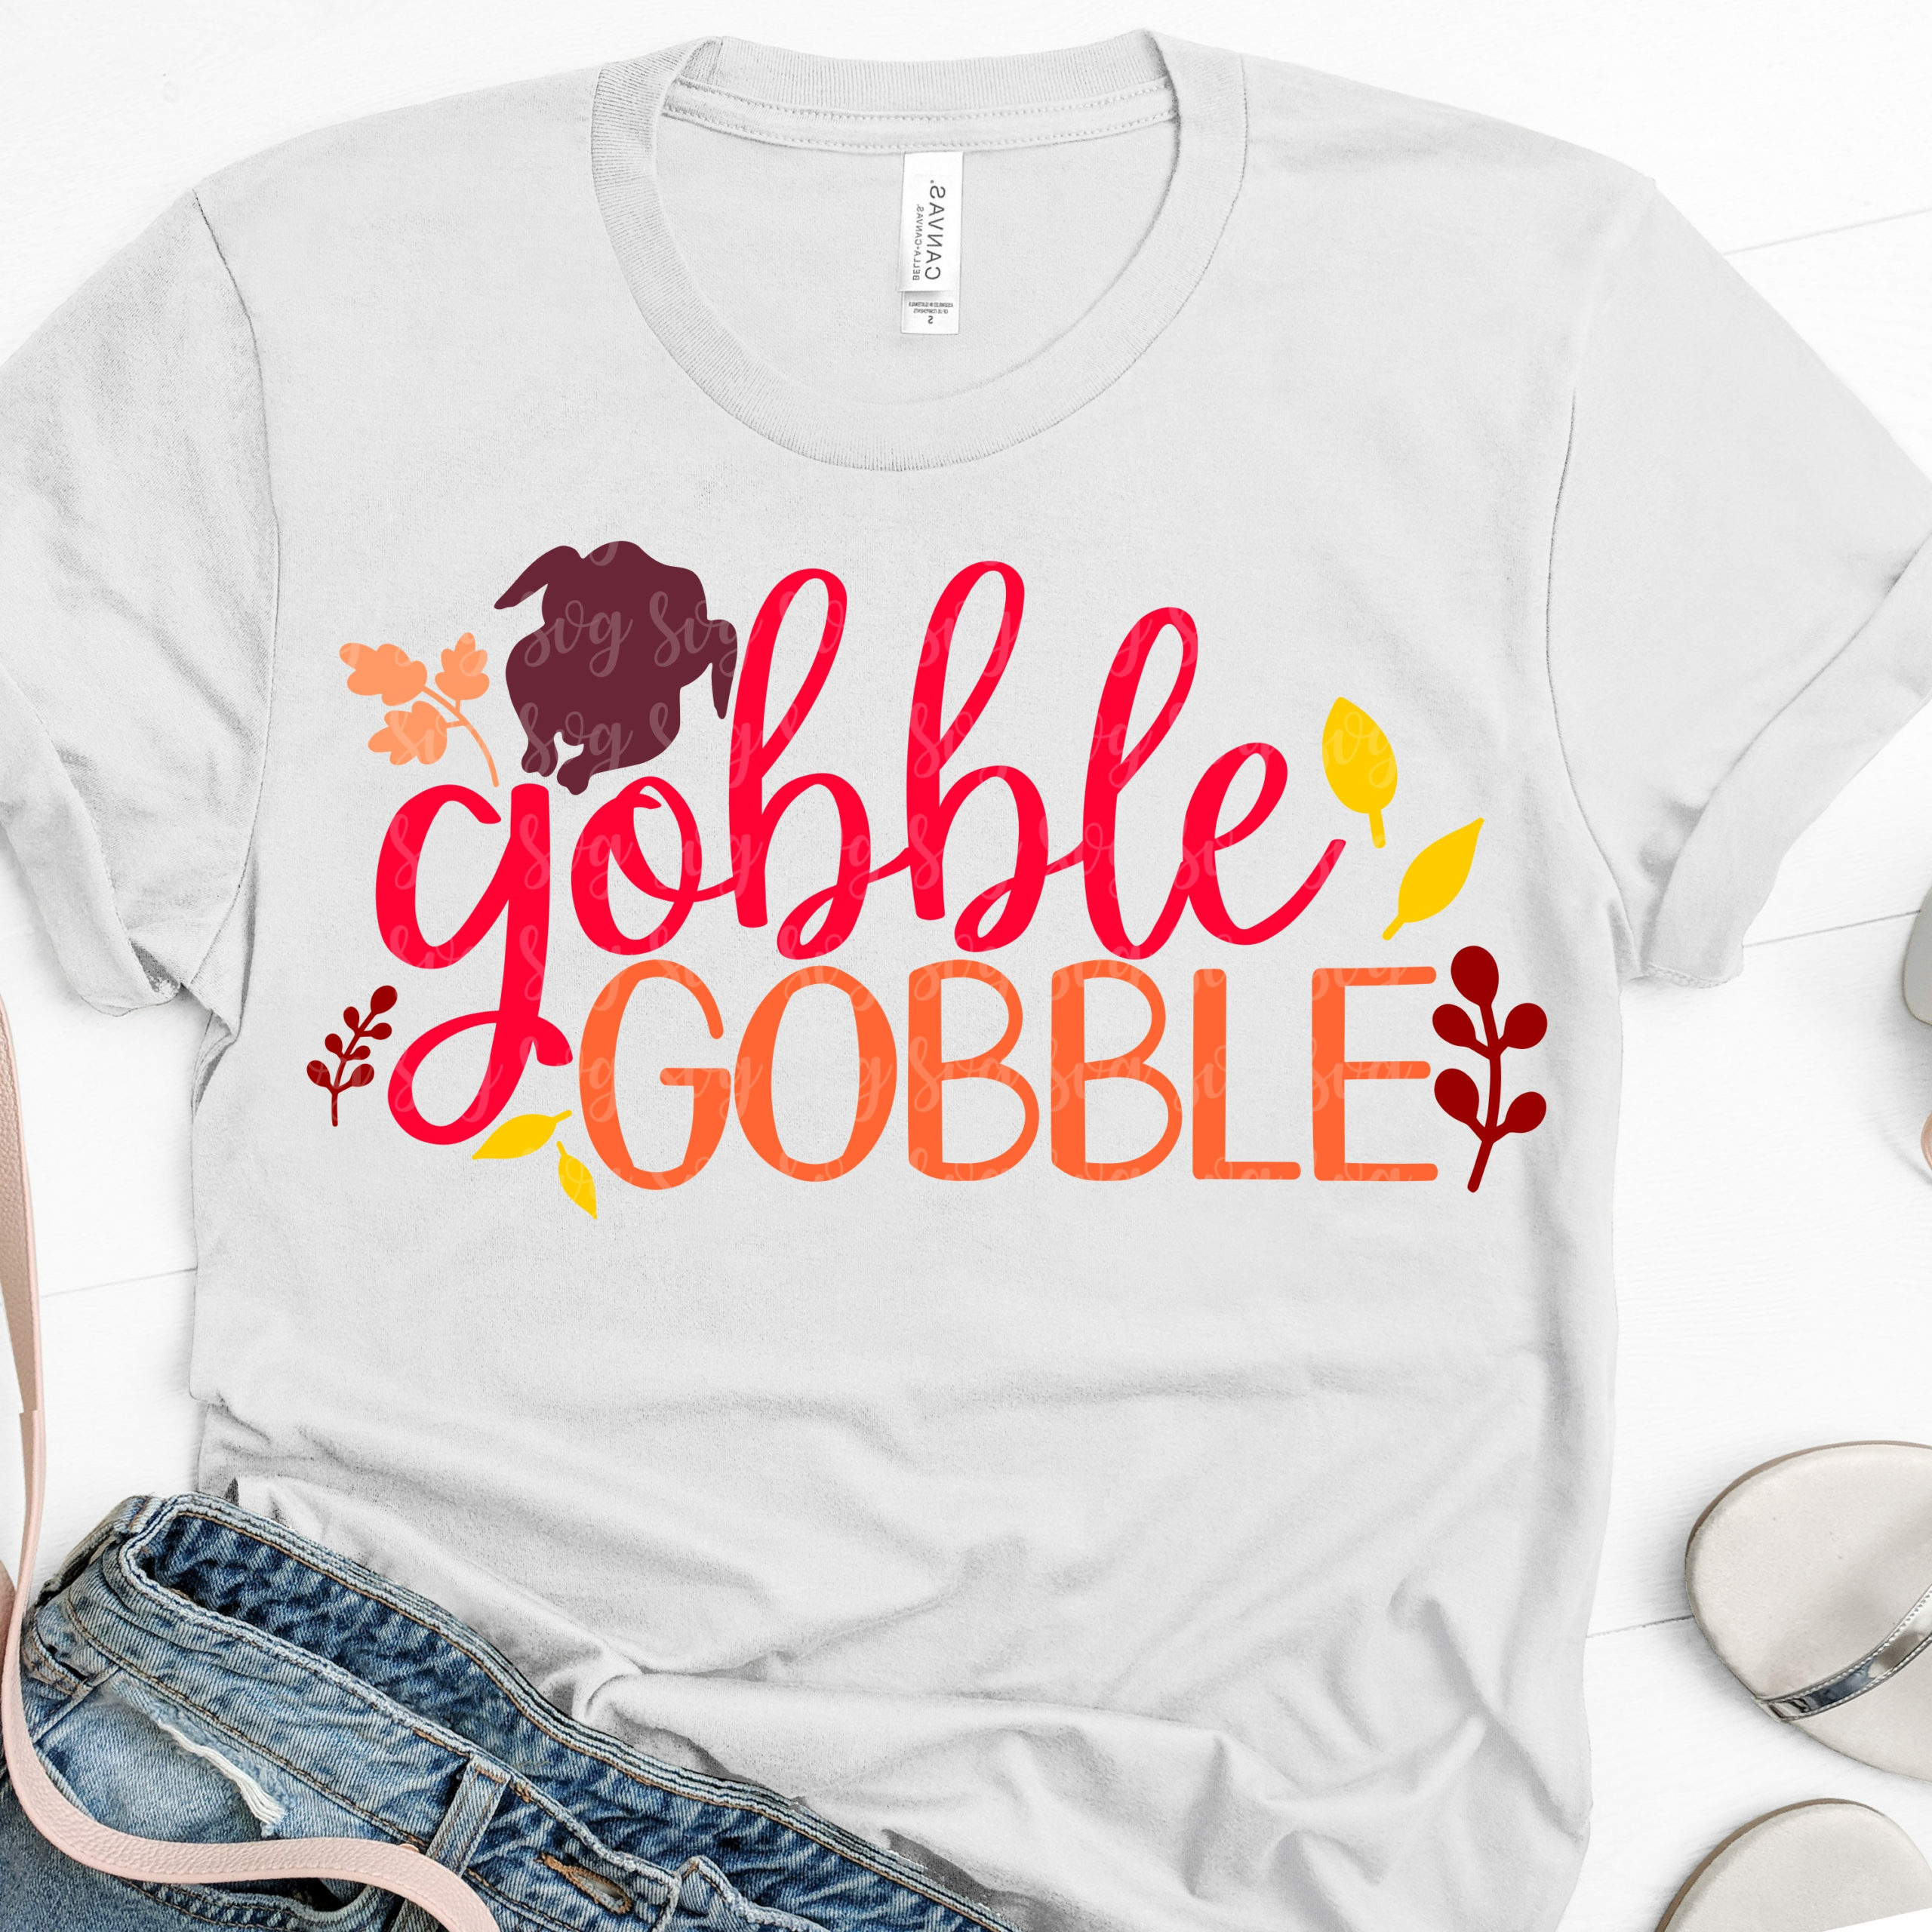 Gobble-gobble-svg-turkey-svg-fall-svg-wobble-svg-thanksgiving-svg-turkey-day-svg-thanksgiving-dxf-eps-svg-png-iron-onprintable-5f721adf